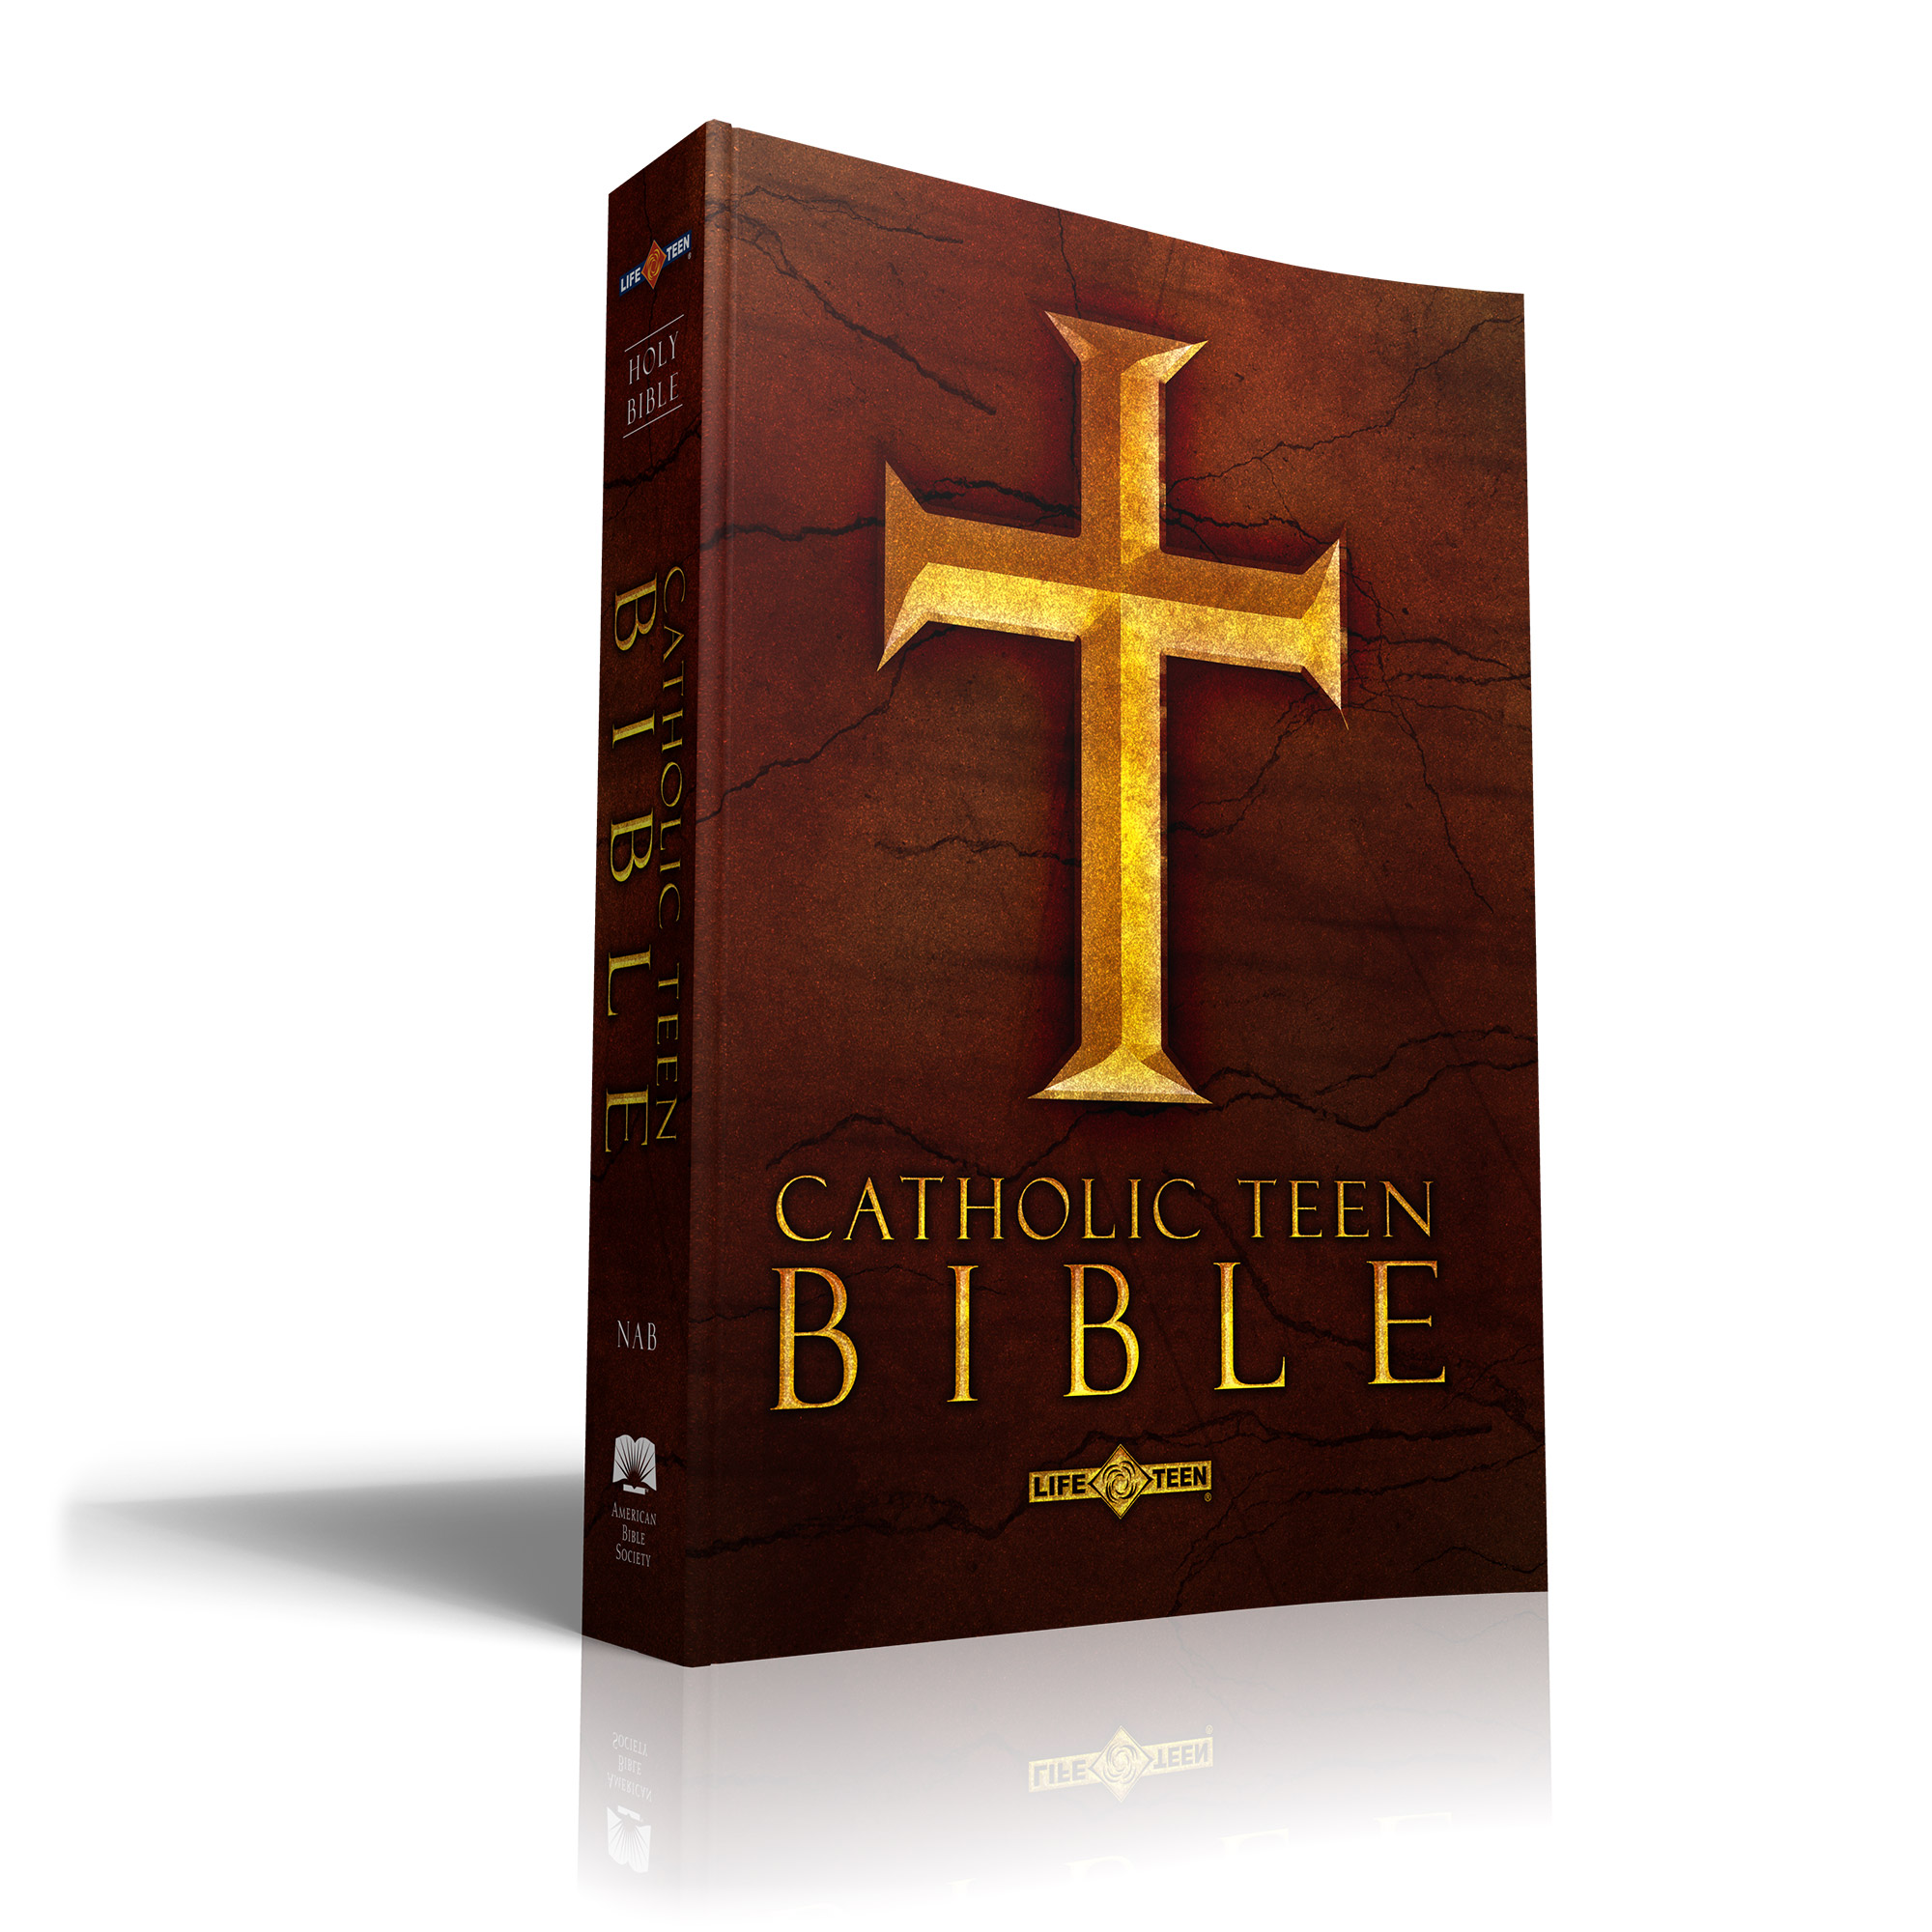 Catholic Youth Bible: Catholic Teen Bible From Life Teen